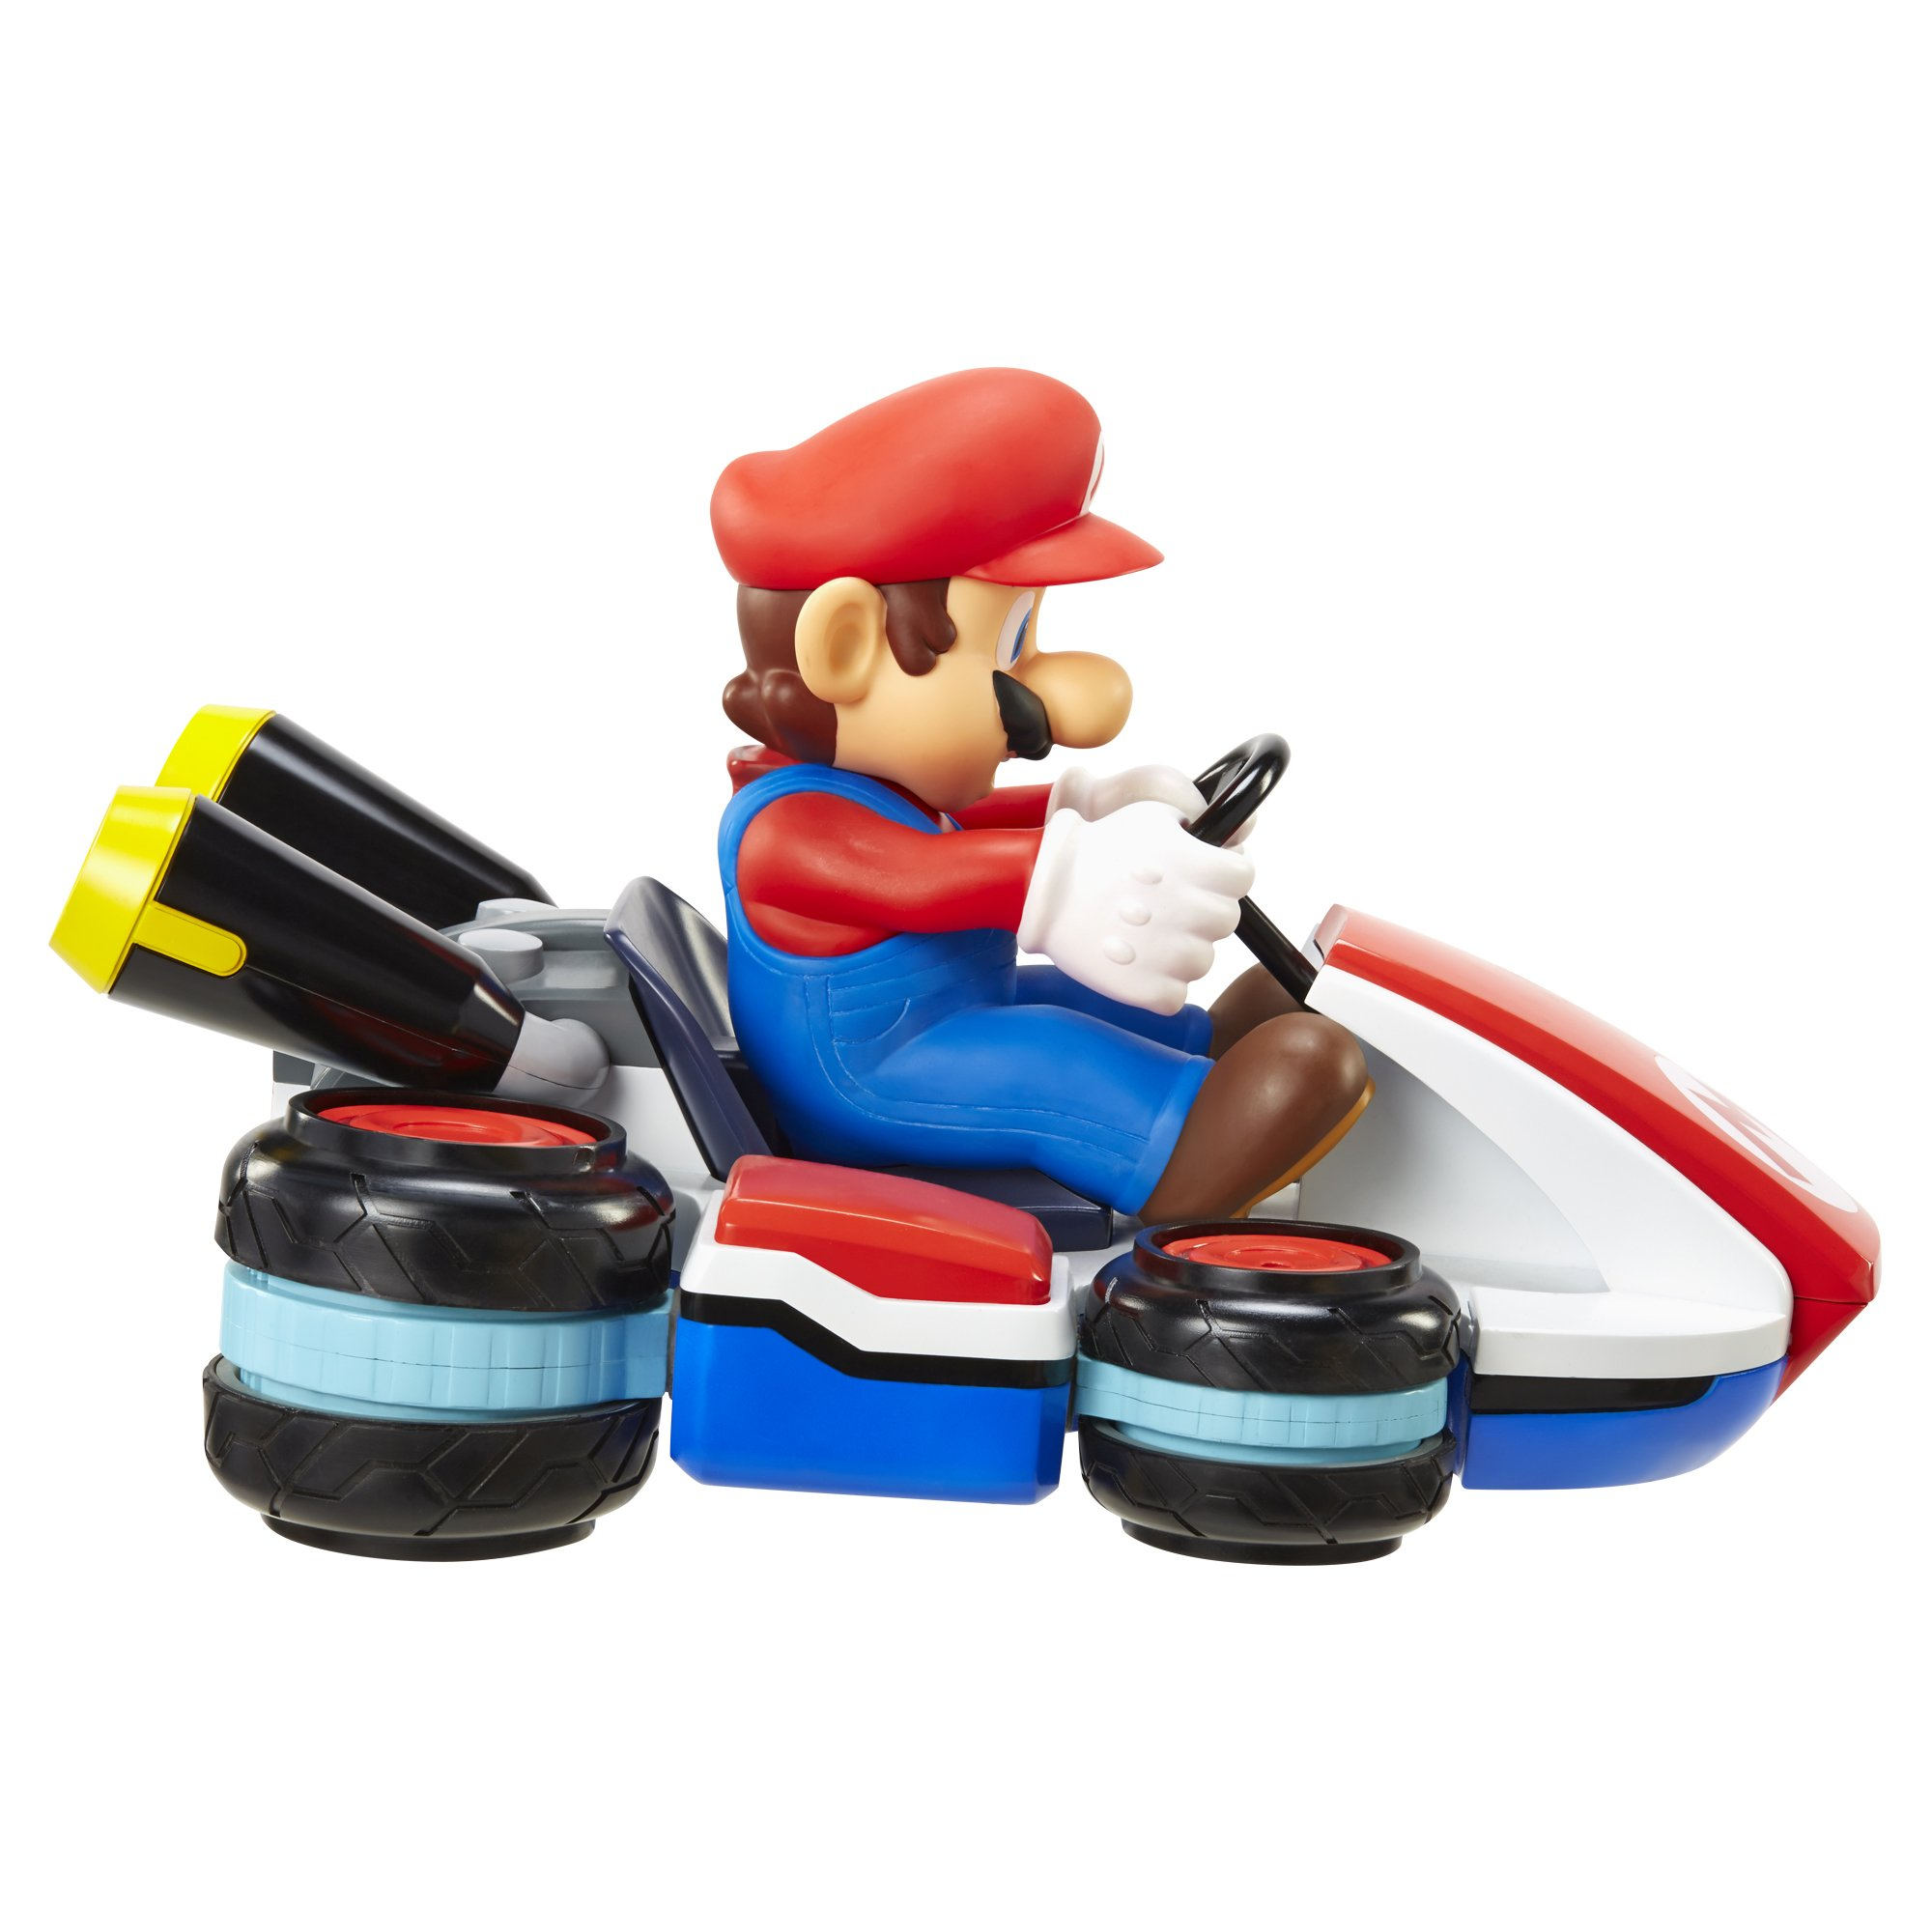 NINTENDO Super Mario Kart 8 Mario Anti-Gravity Mini RC Racer 2.4Ghz by Nintendo (Image #10)